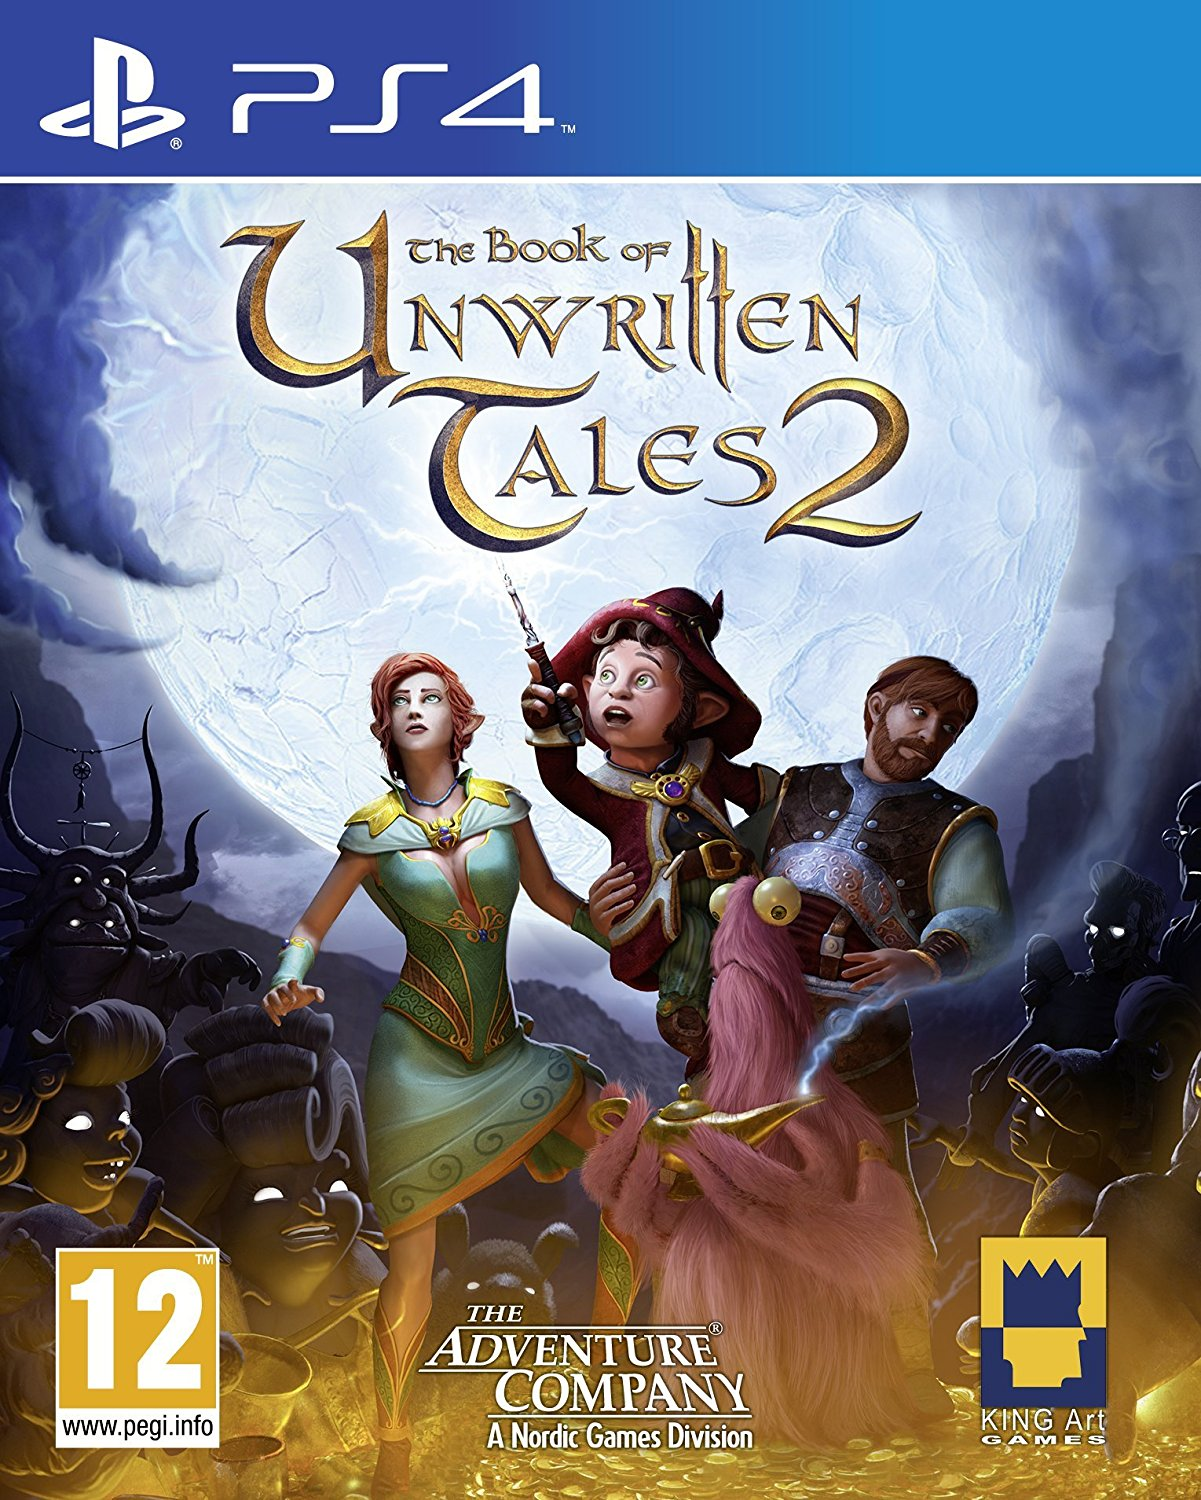 Book of Unwritten Tales 2 für die PlayStation 4 bei Amazon bestellen